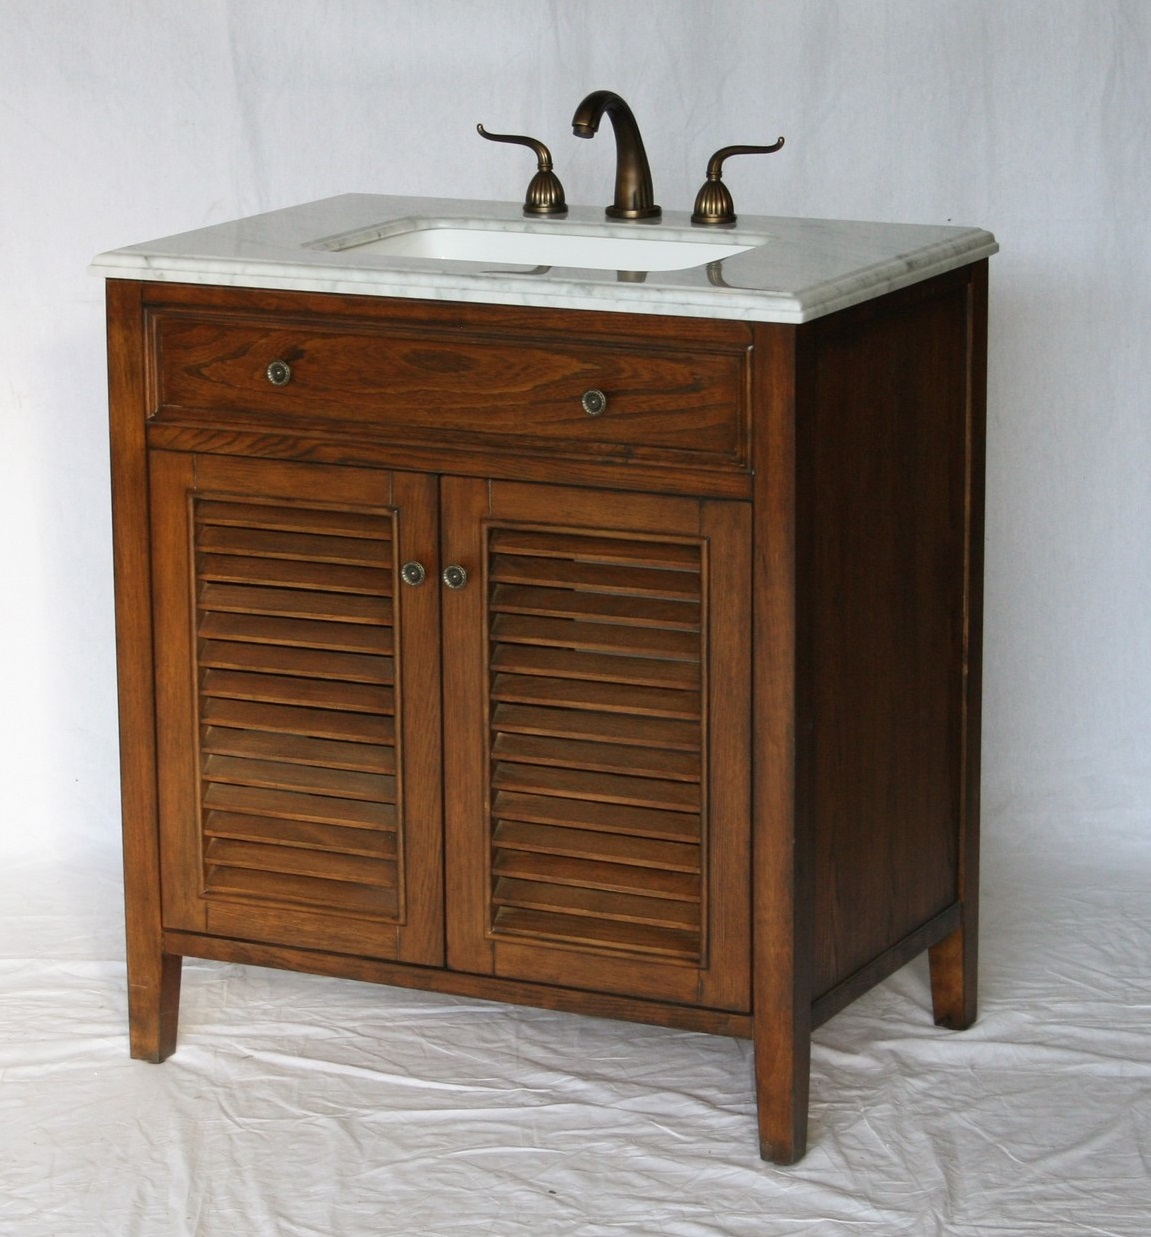 32 inch bathroom vanity coastal cottage beach vintage style walnut 32 Inch Bathroom Vanity